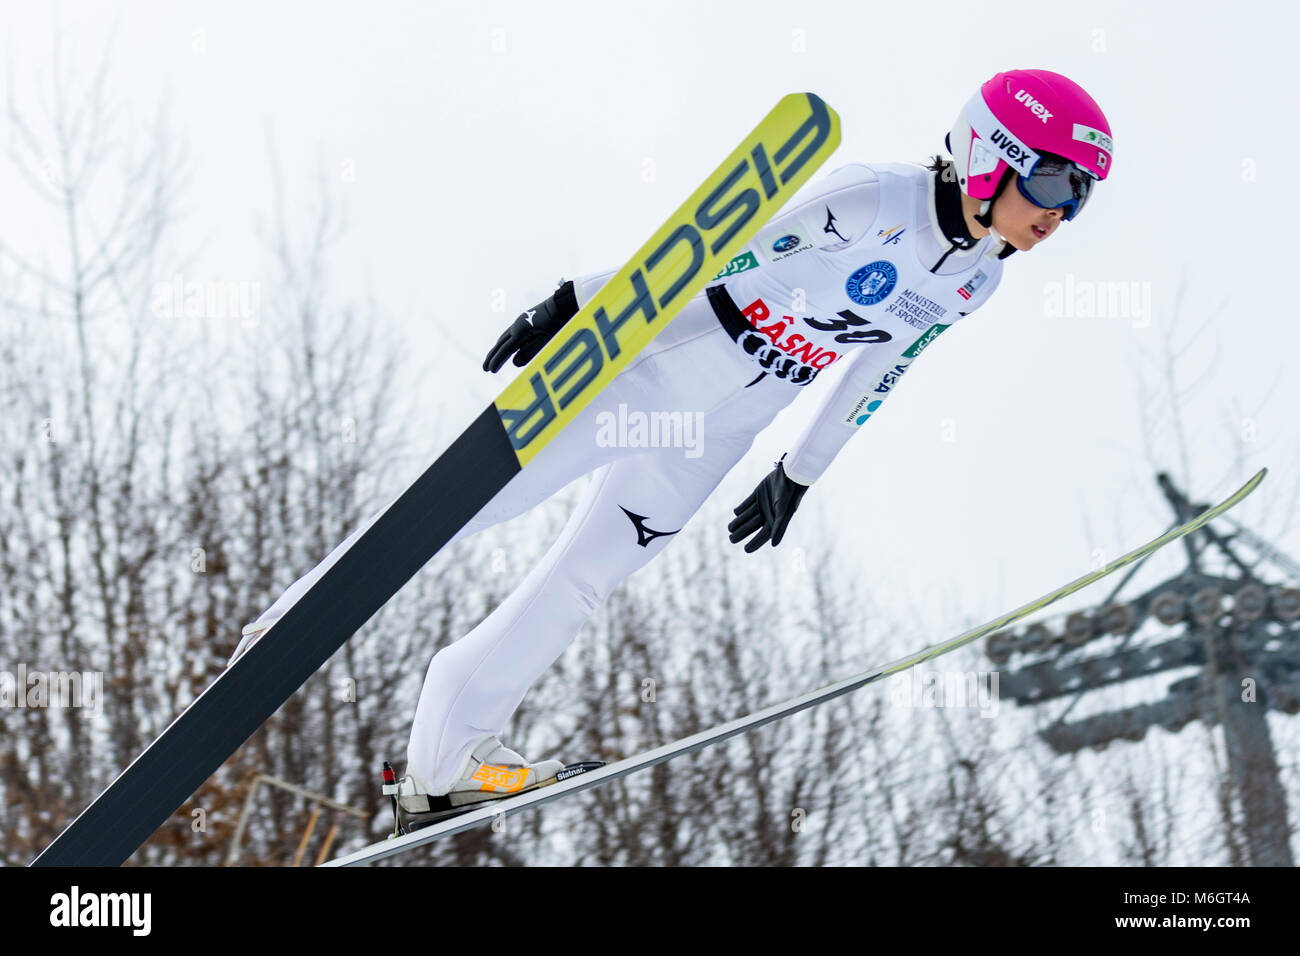 March 4, 2018: Yuka Seto (JPN)  during the  FIS Ski Jumping World Cup Ladies Rasnov (ROU) 2018 at Valea Carbunarii, - Stock Image